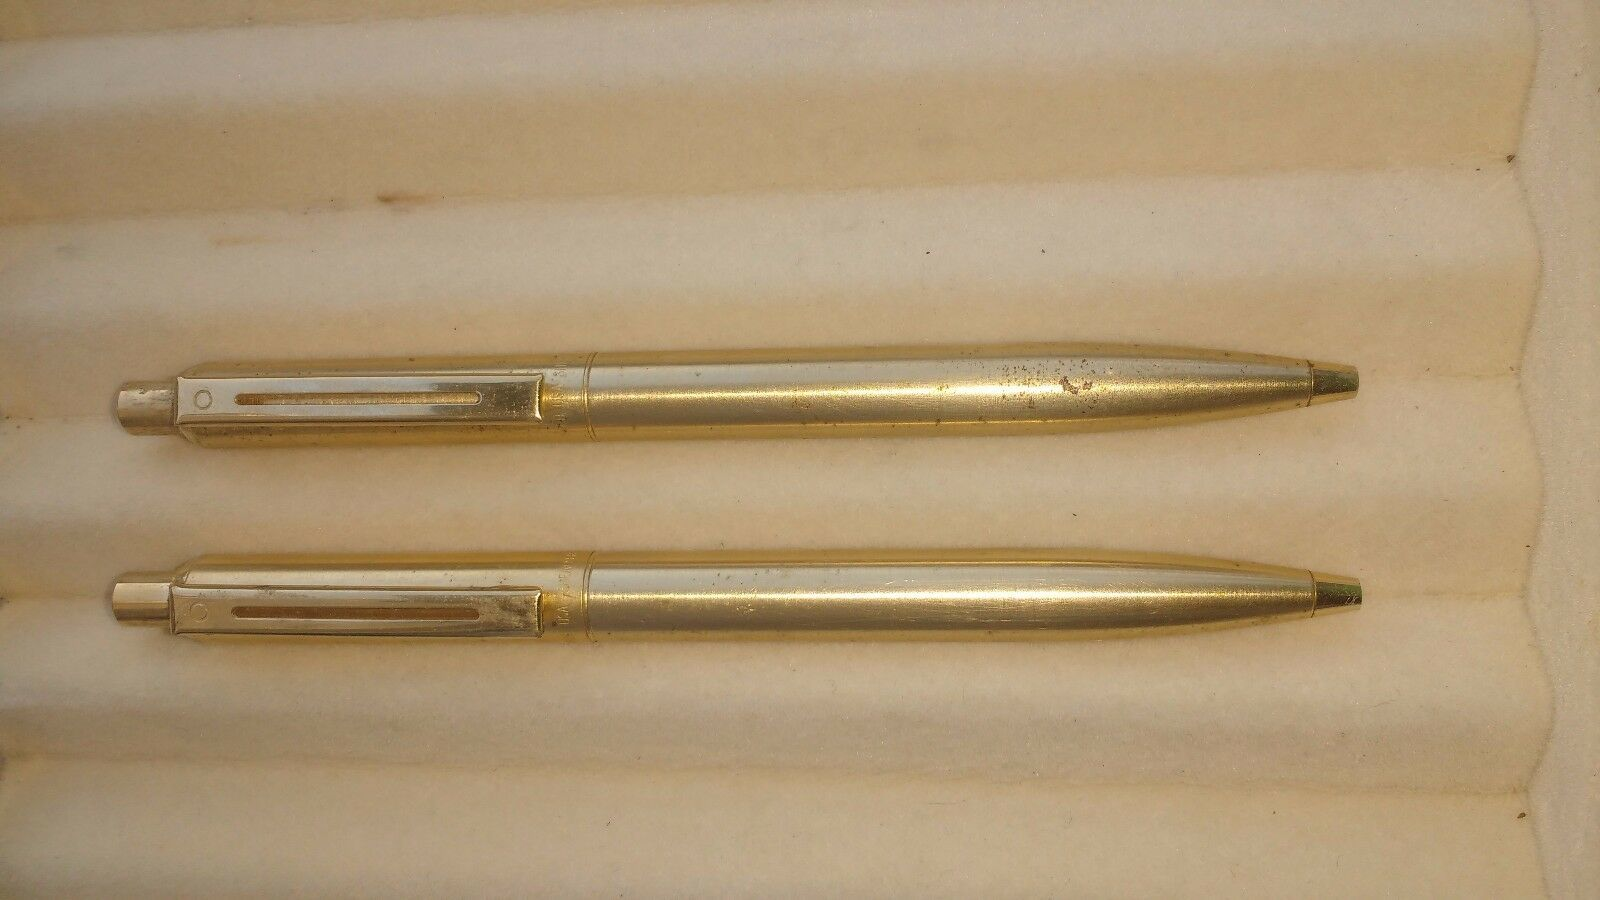 2 PC VINTAGE SHEAFFER SENTINEL BRUSHED GOLD PLATED TRIM BALL POINT PEN(329-2)